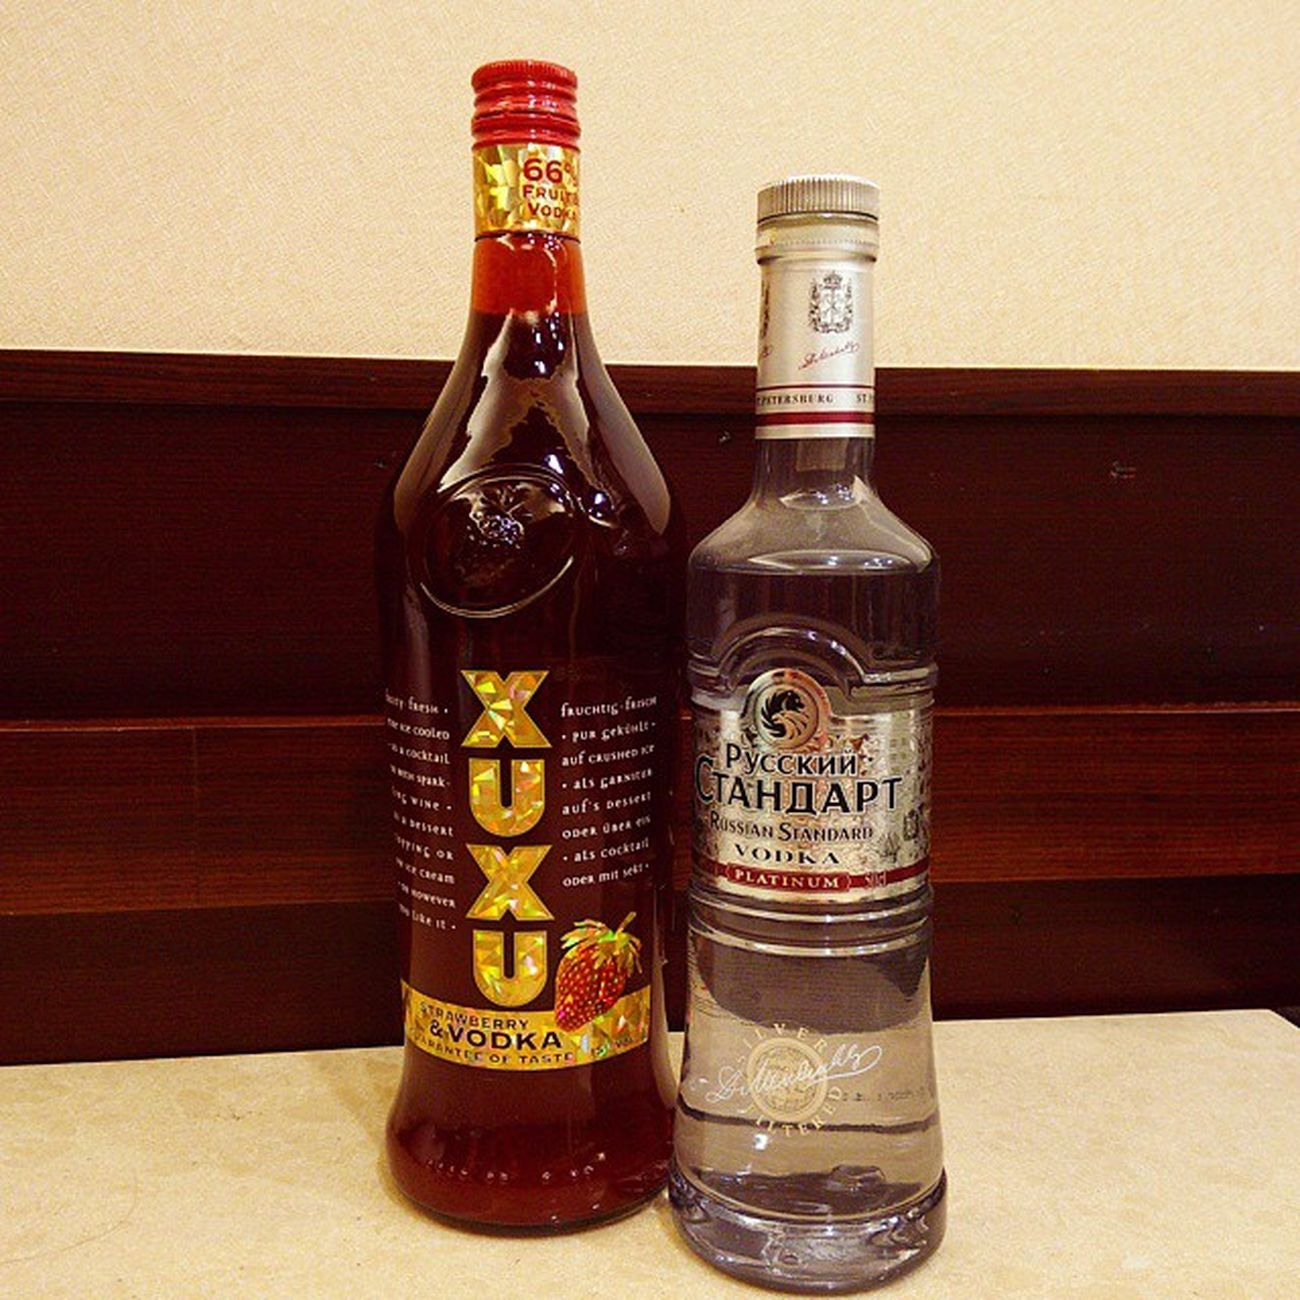 真正的Russian Vodka Xuxustrawberryvodka Strawberryvodka Russianstandard Russianstandardvodka Russianvodka